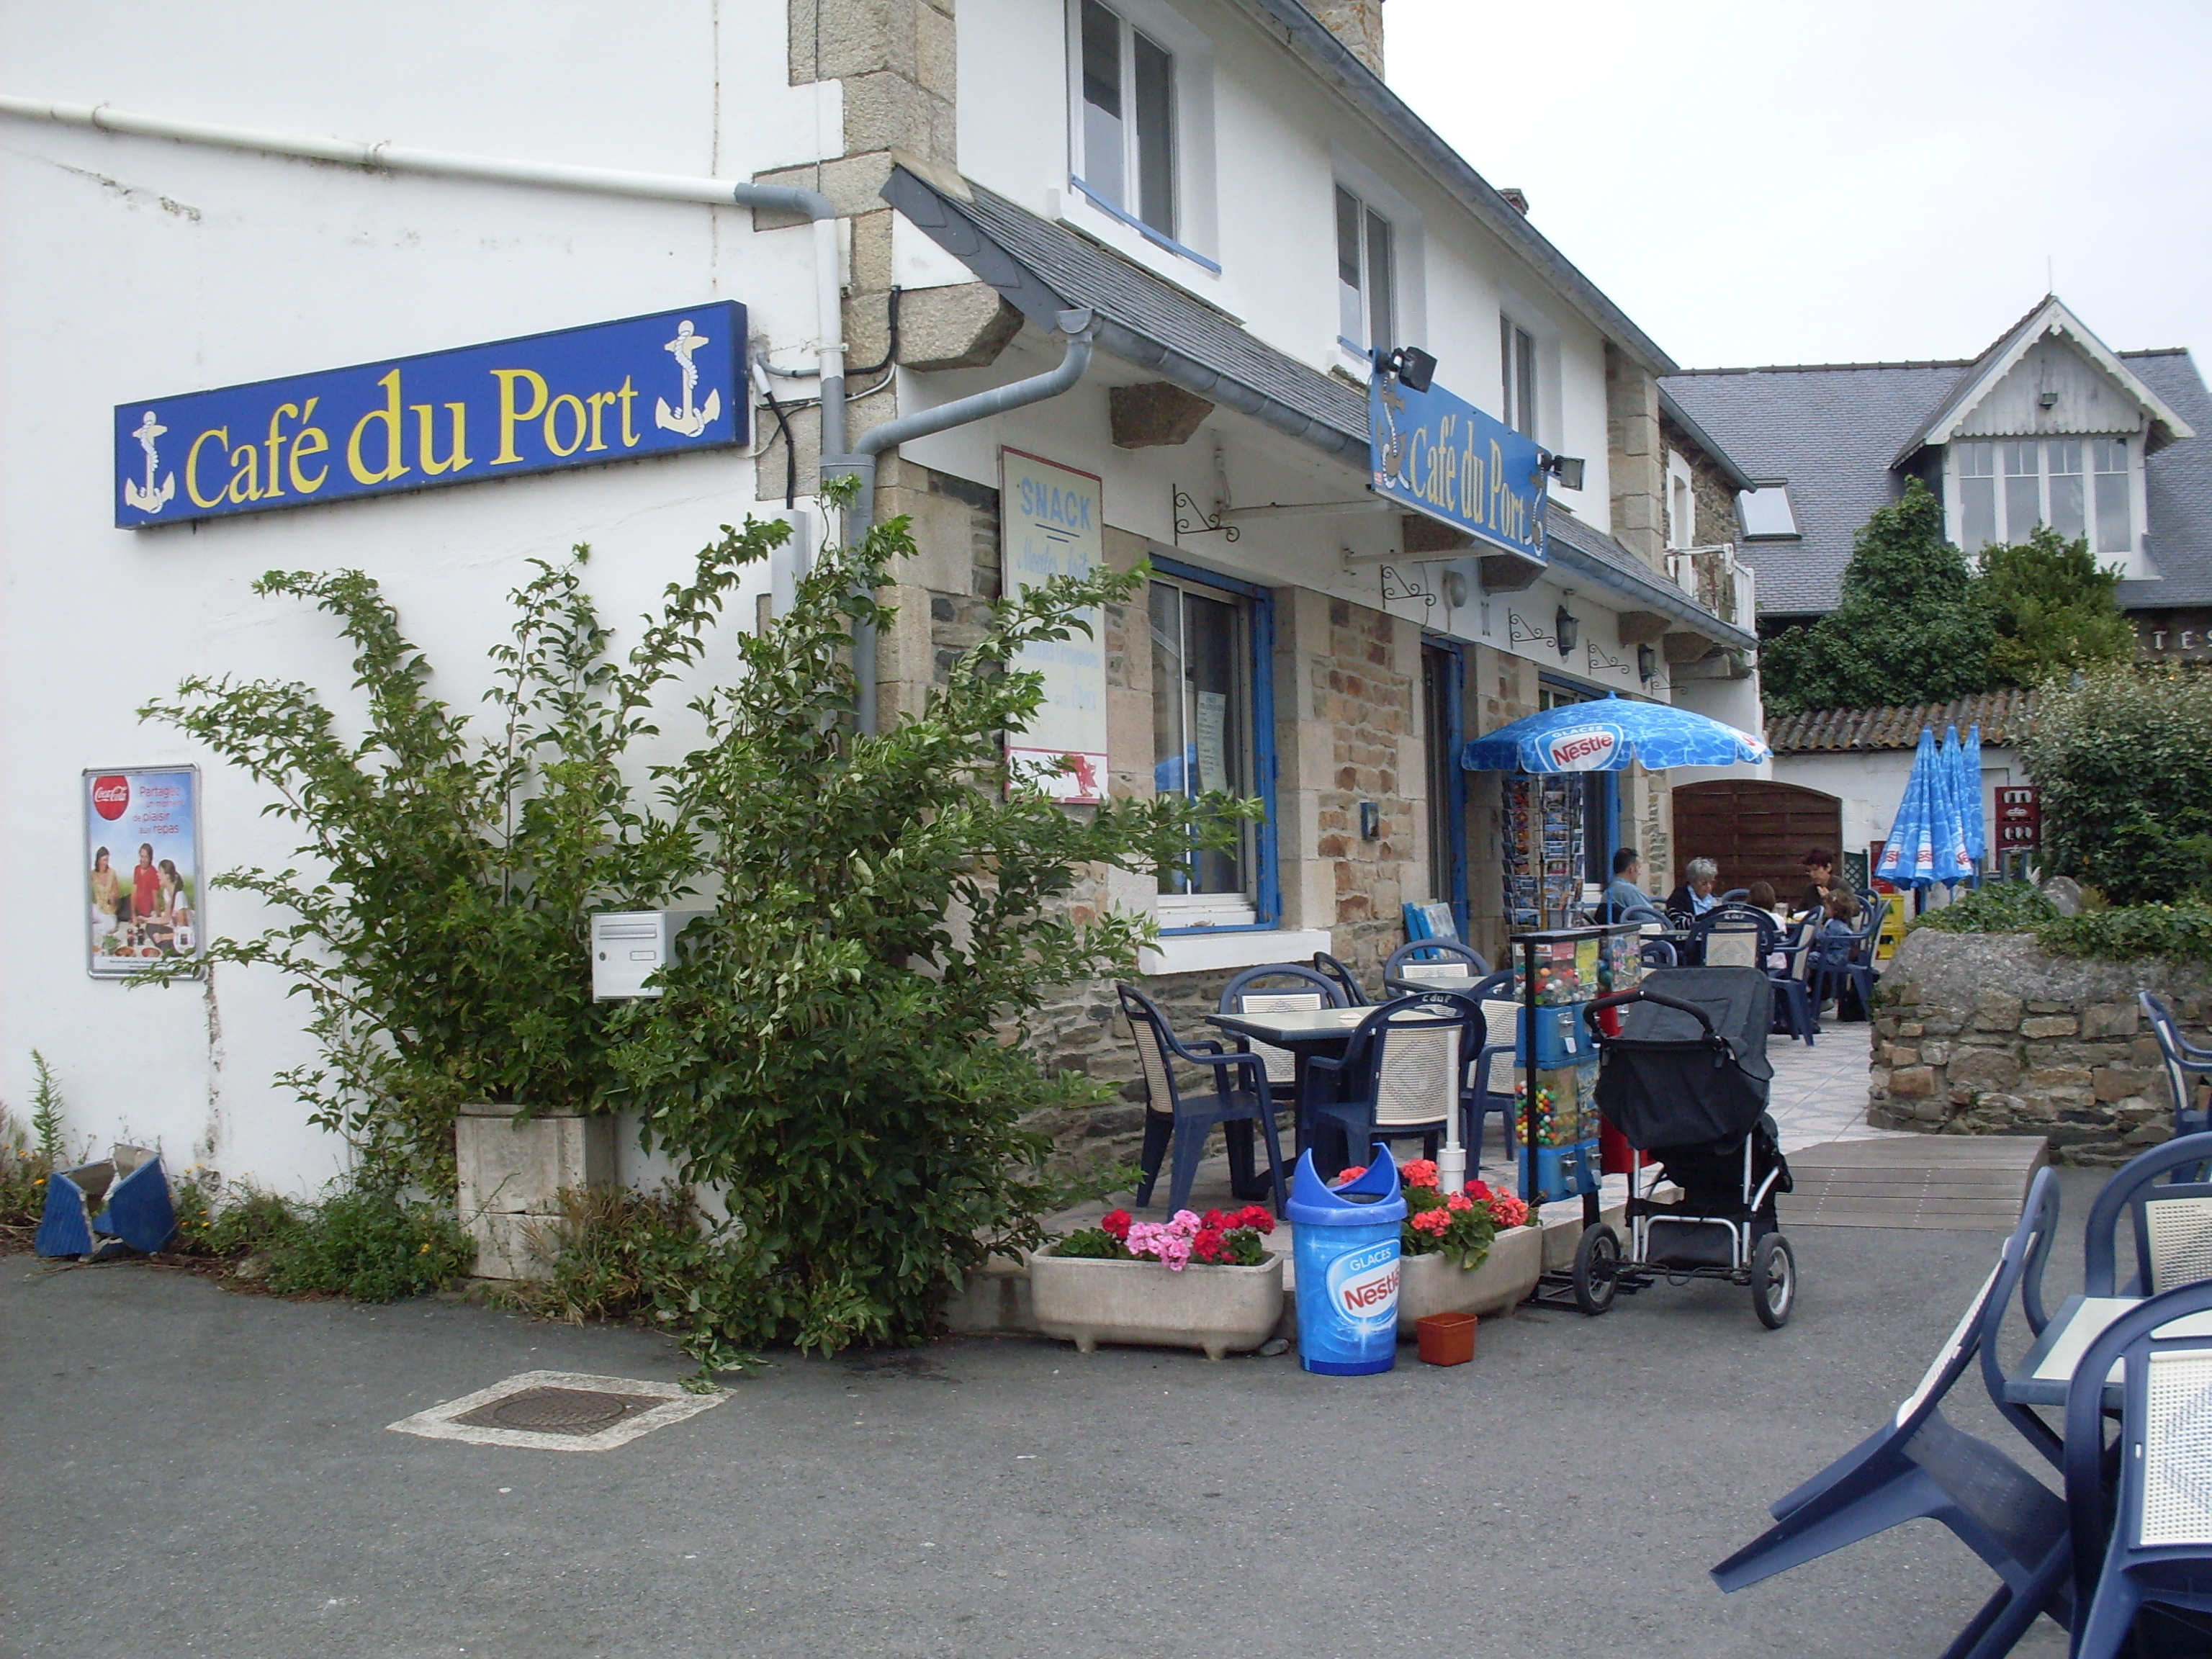 © #http://cdt22.media.tourinsoft.eu/upload/Cafe-du-Port_1.jpg